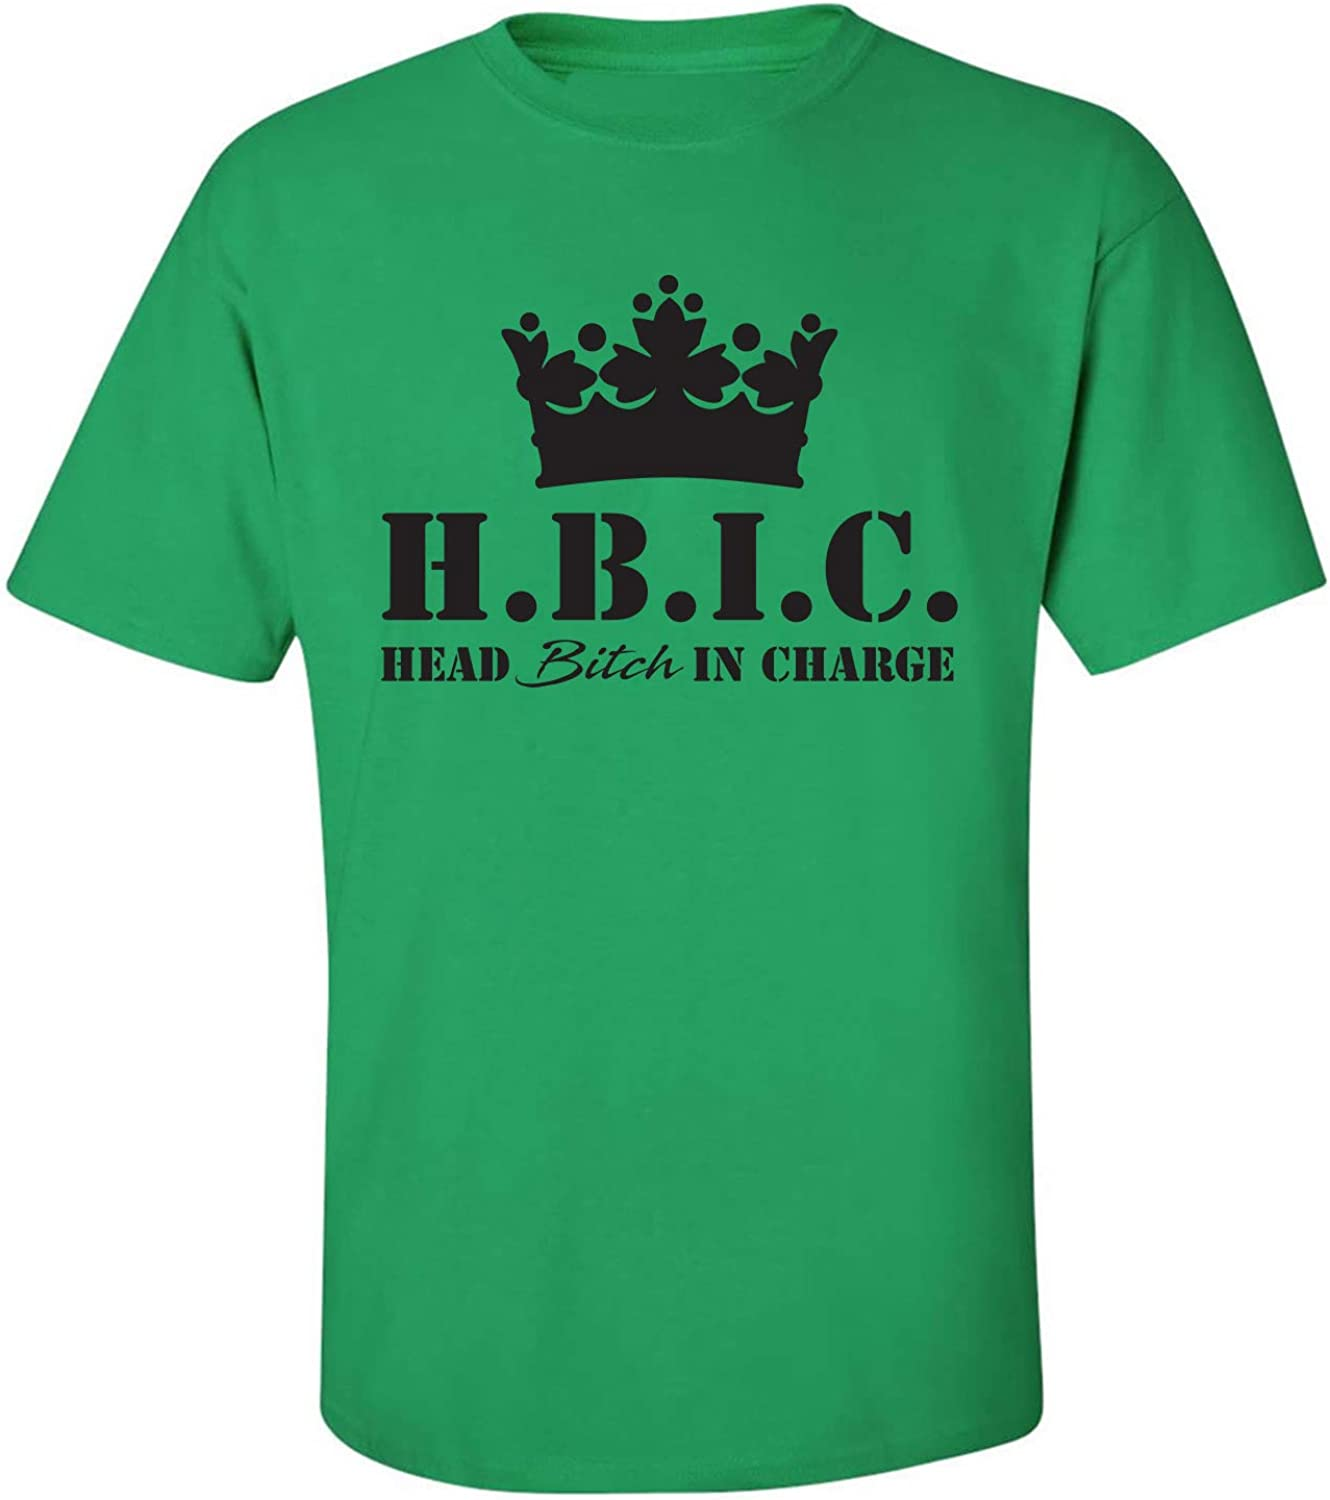 H.B.I.C. Head Bitch in Charge Adult Short Sleeve T-Shirt